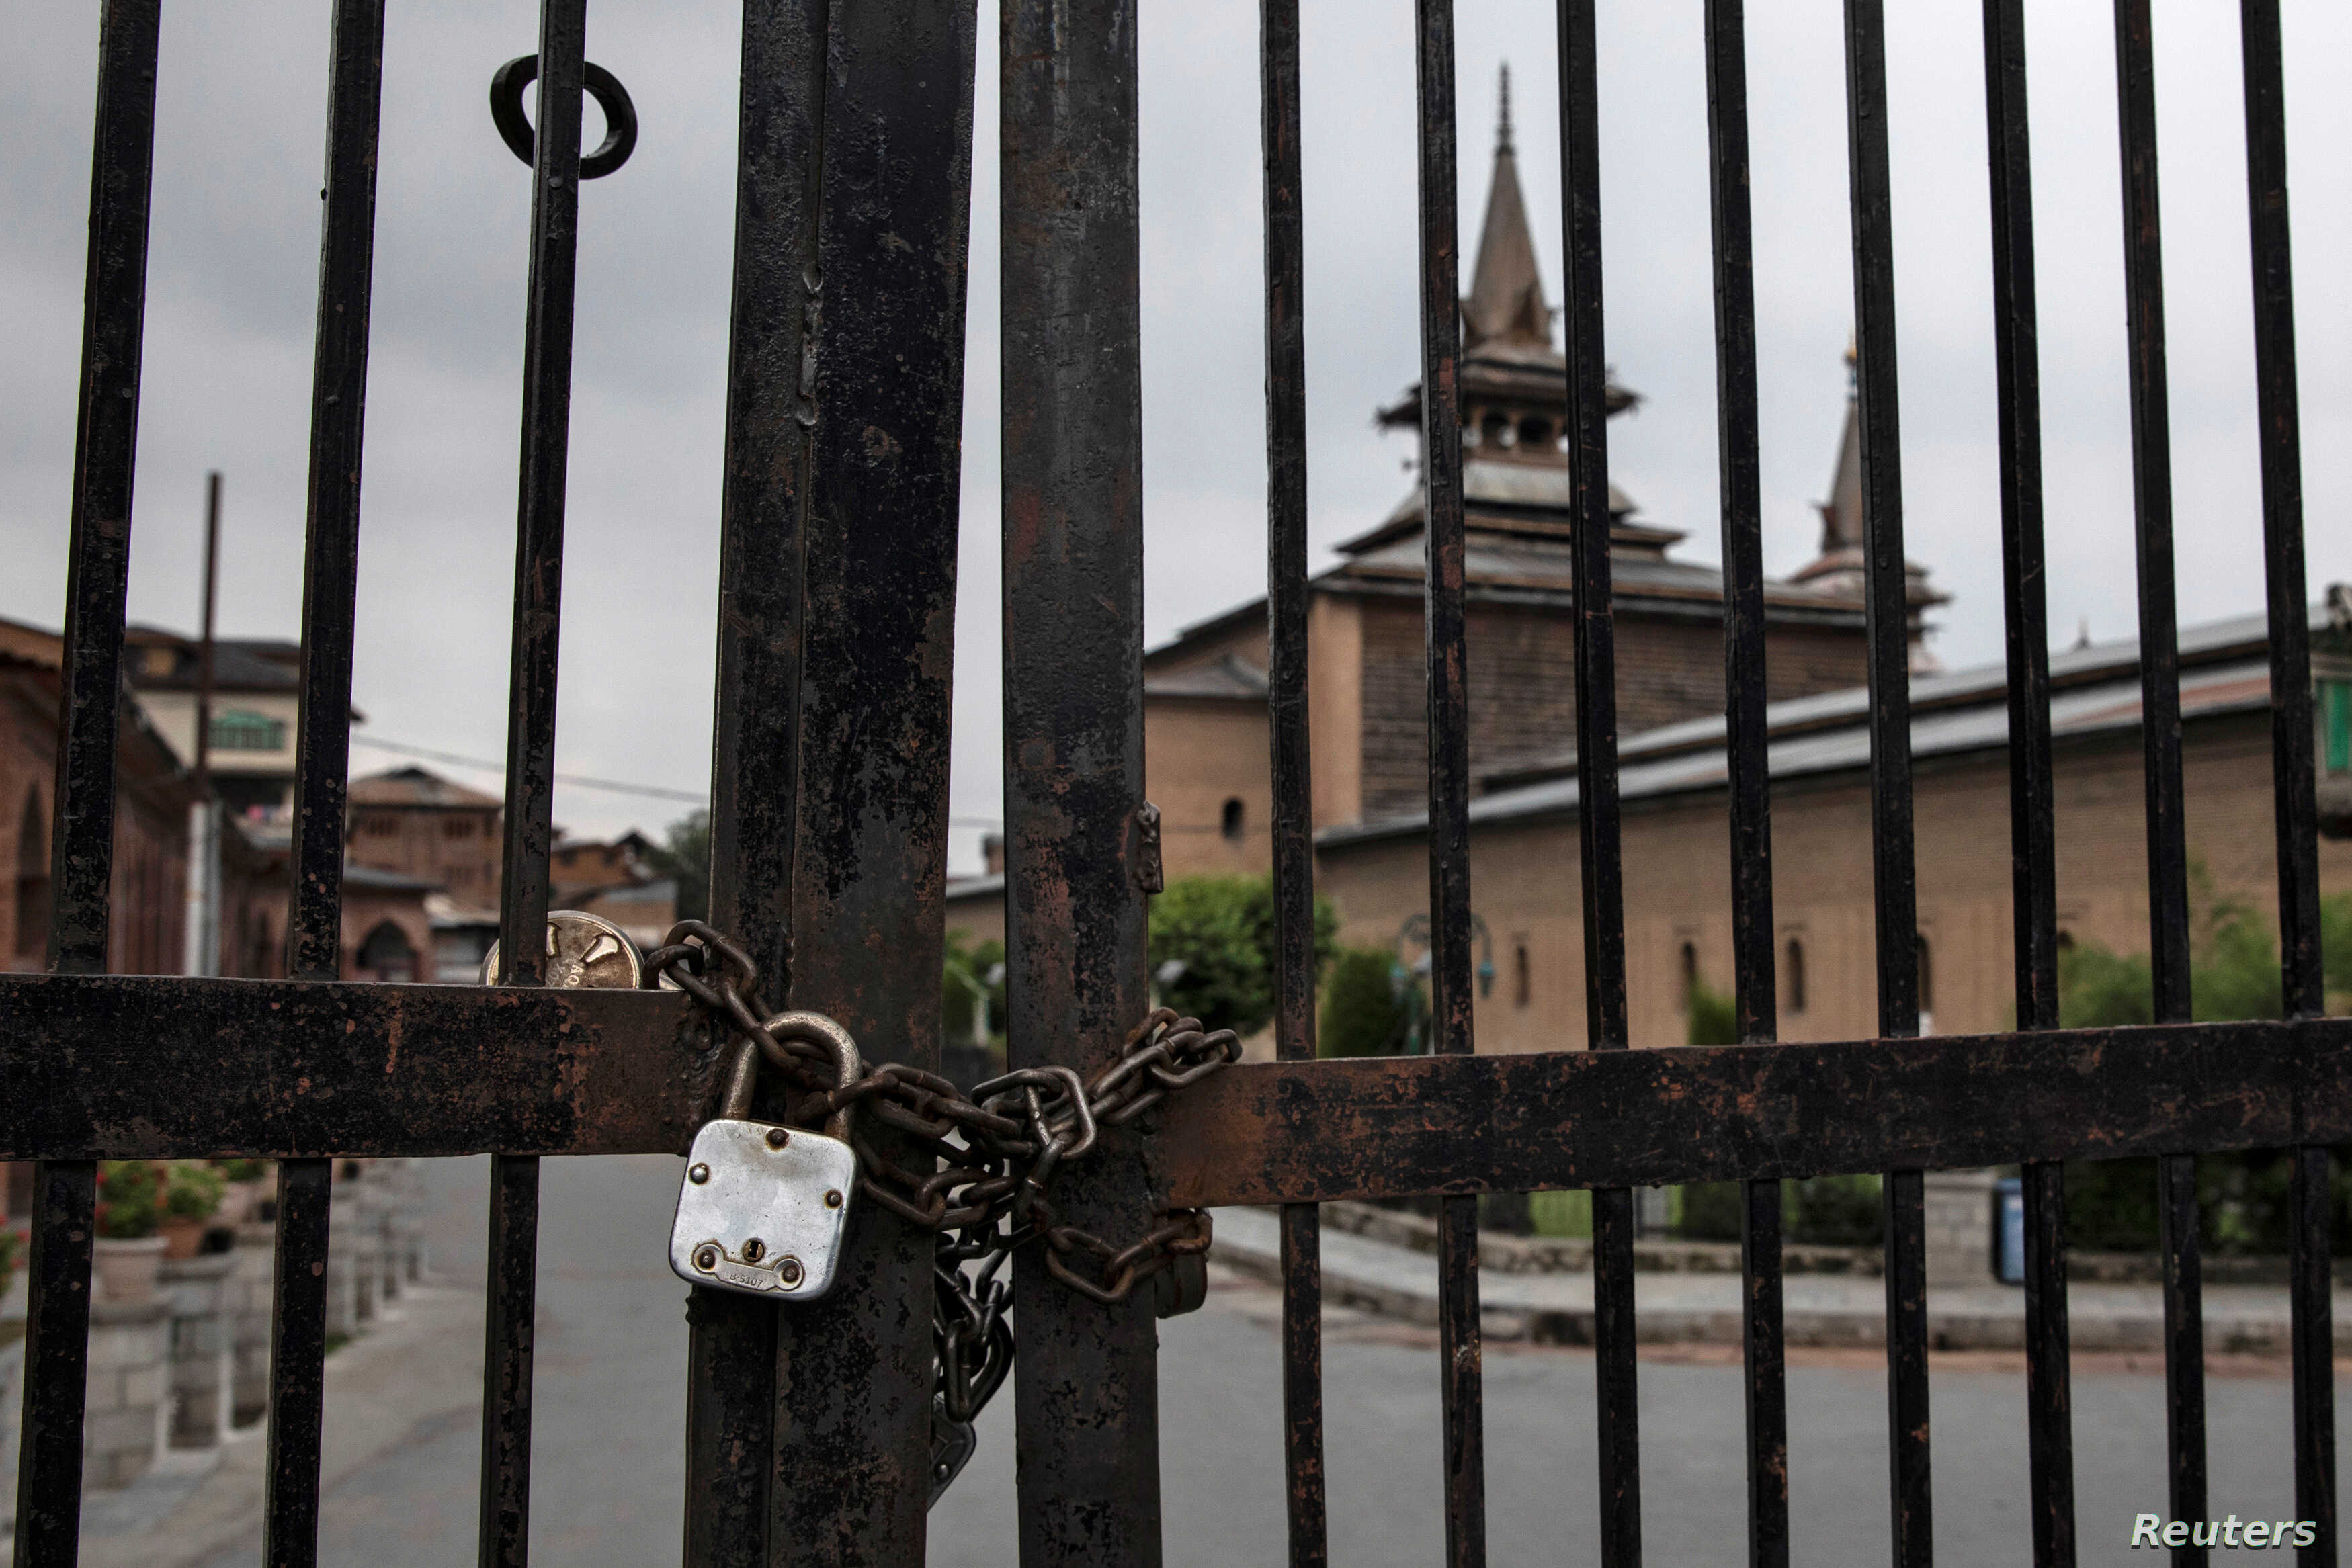 Jamia Masjid is locked during restrictions ahead of Eid-al-Adha after India scrapped the special constitutional status for Kashmir, in Srinagar, Aug. 11, 2019.